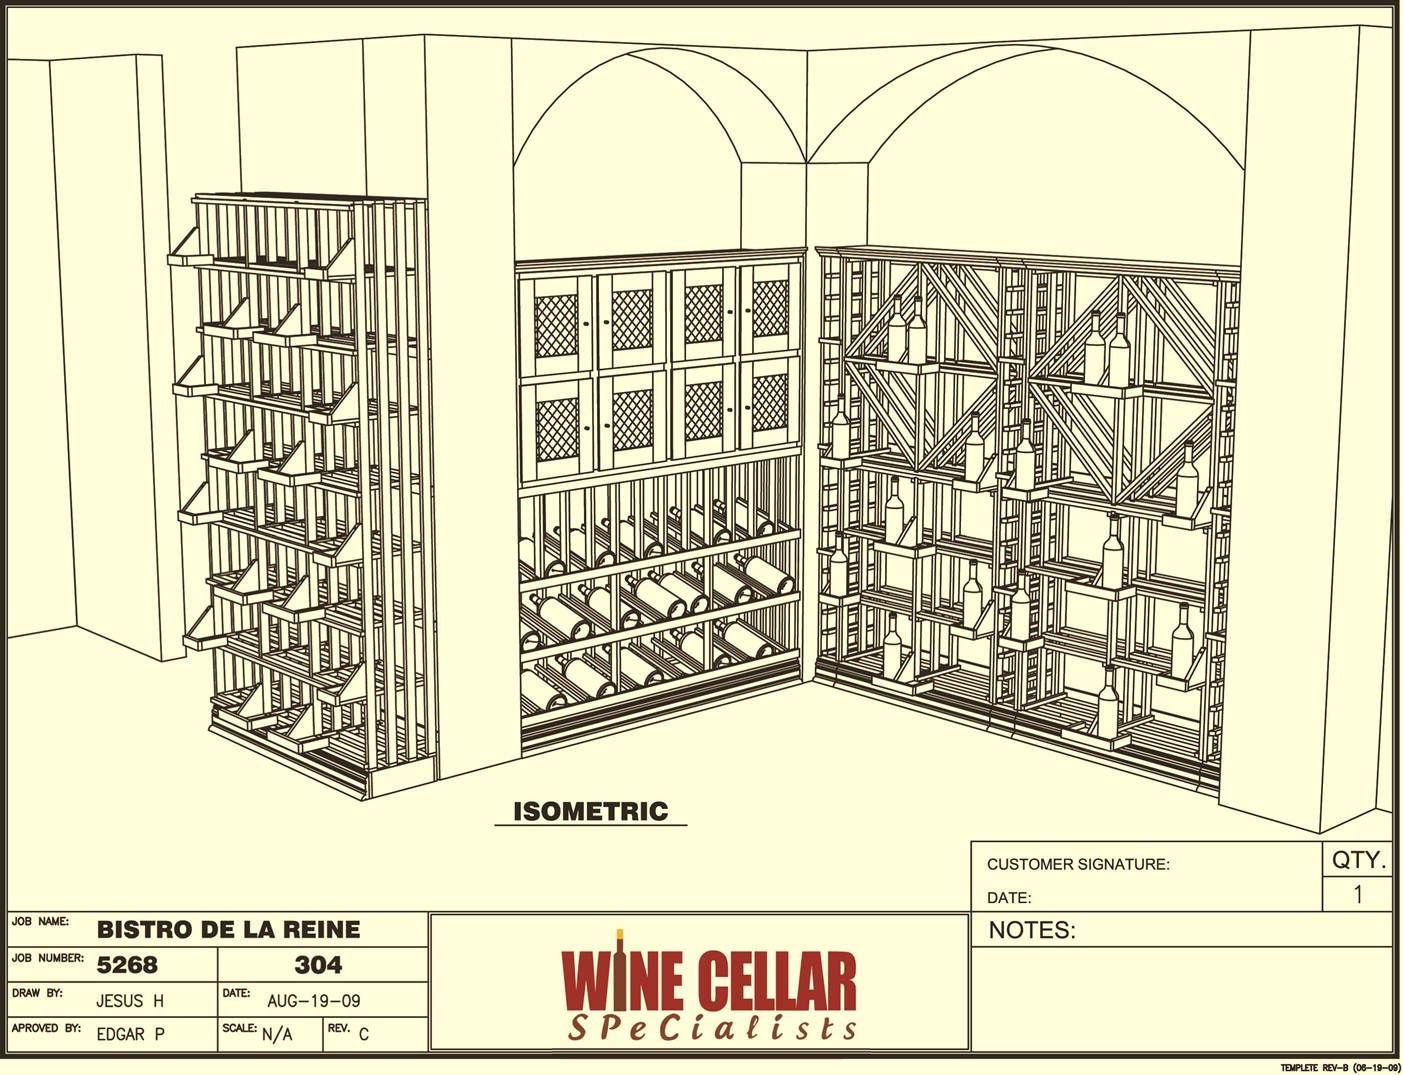 Pin By Winecellar Specialists On Commercial Wine Racks New